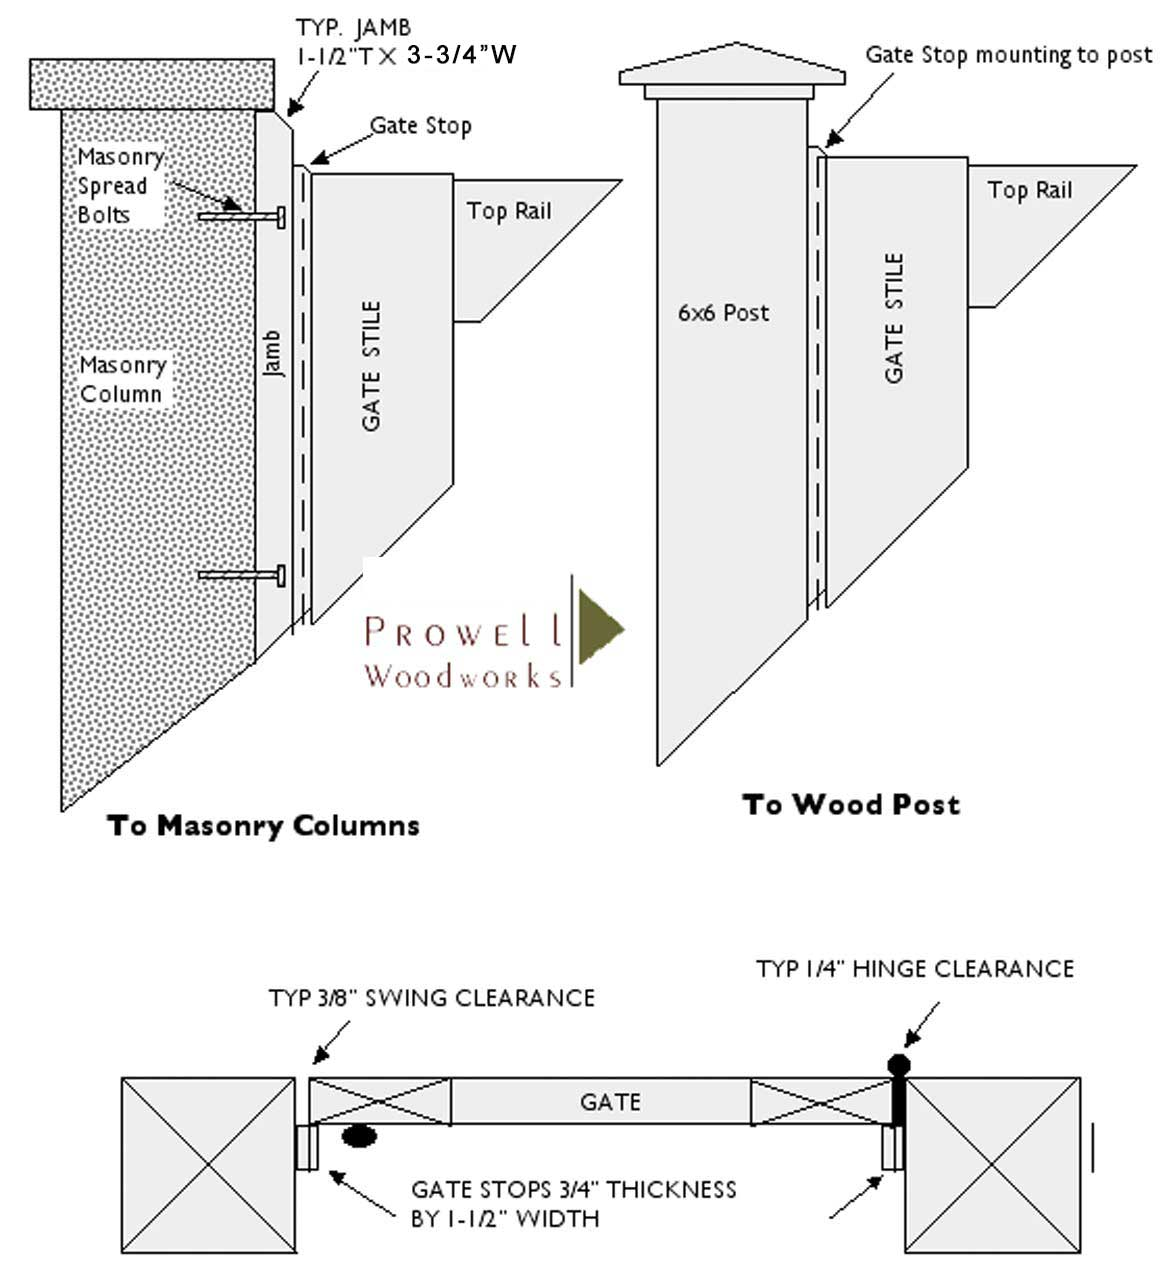 gate jamb PDF specifications